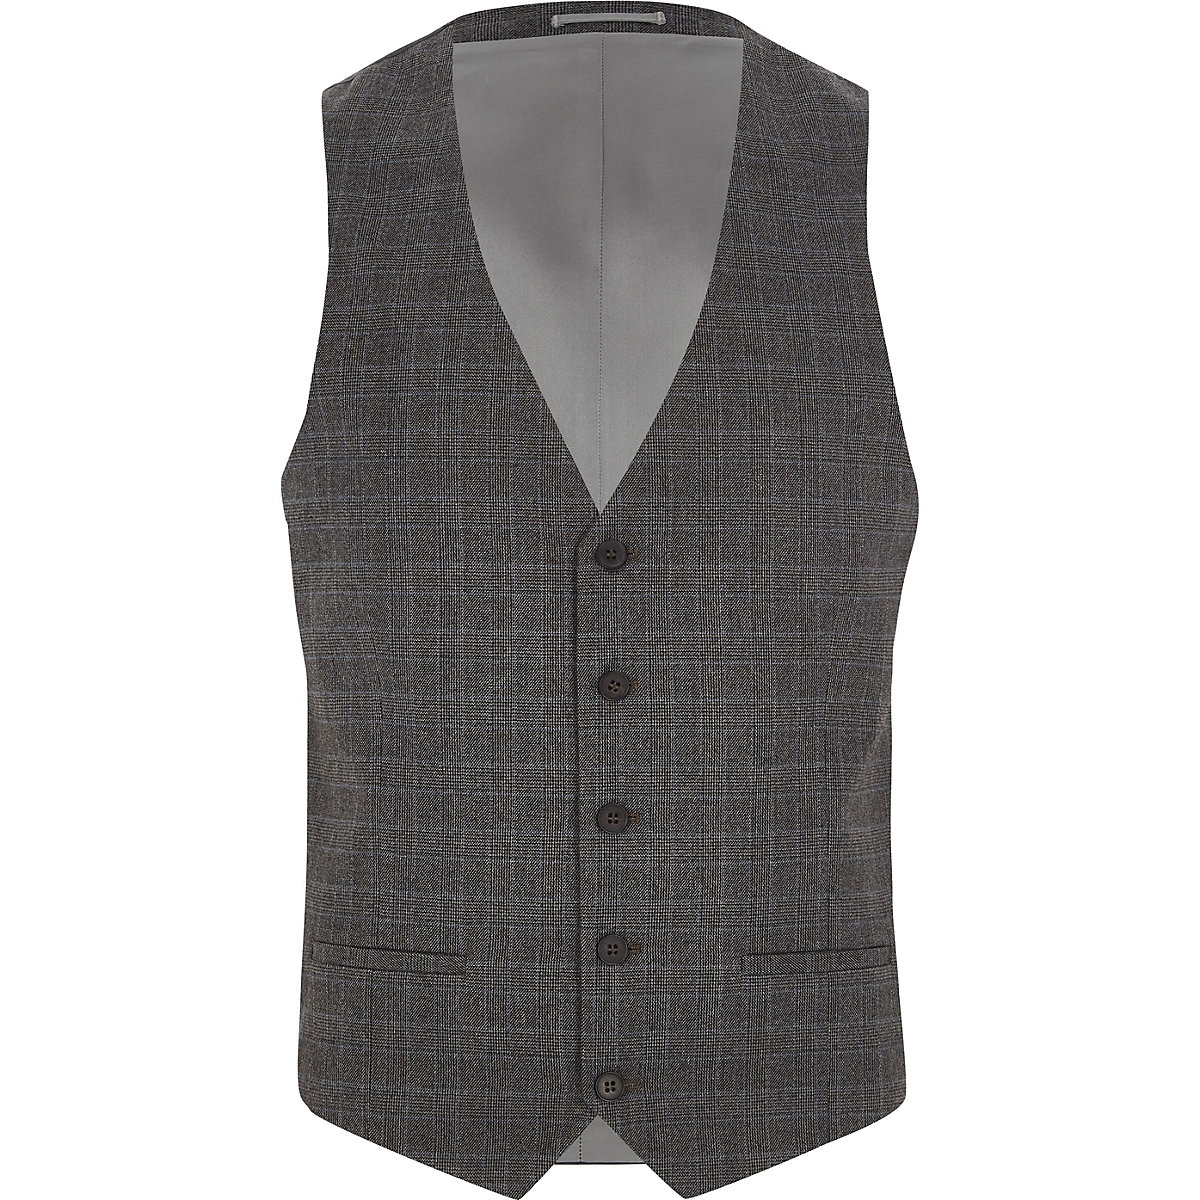 Grey Prince of Wales suit waistcoat